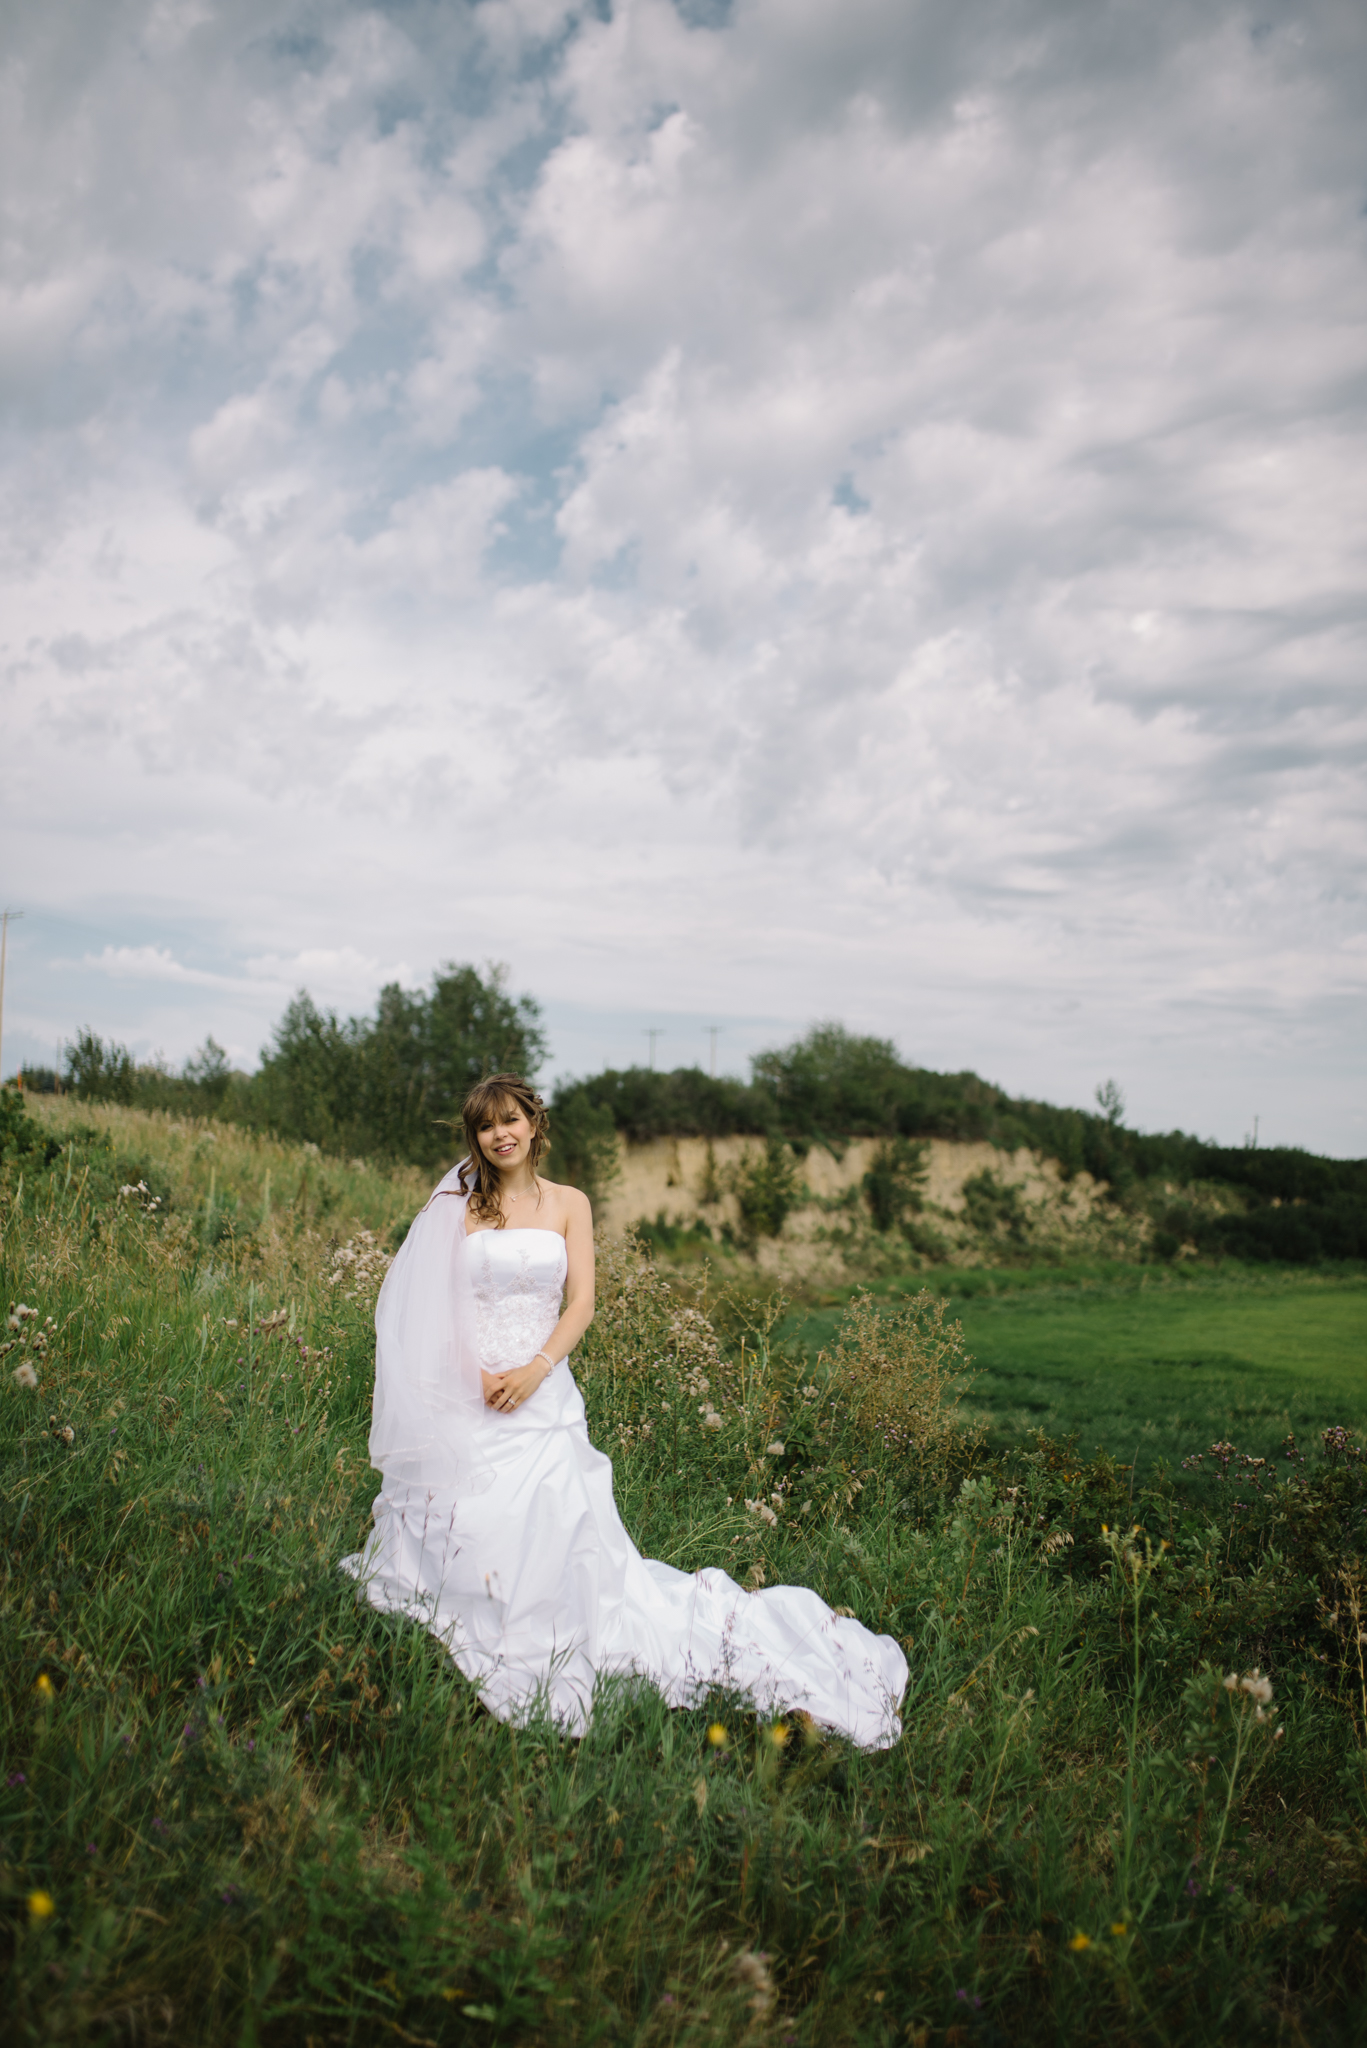 Summer wedding photography, Bridal portraits, St. Albert